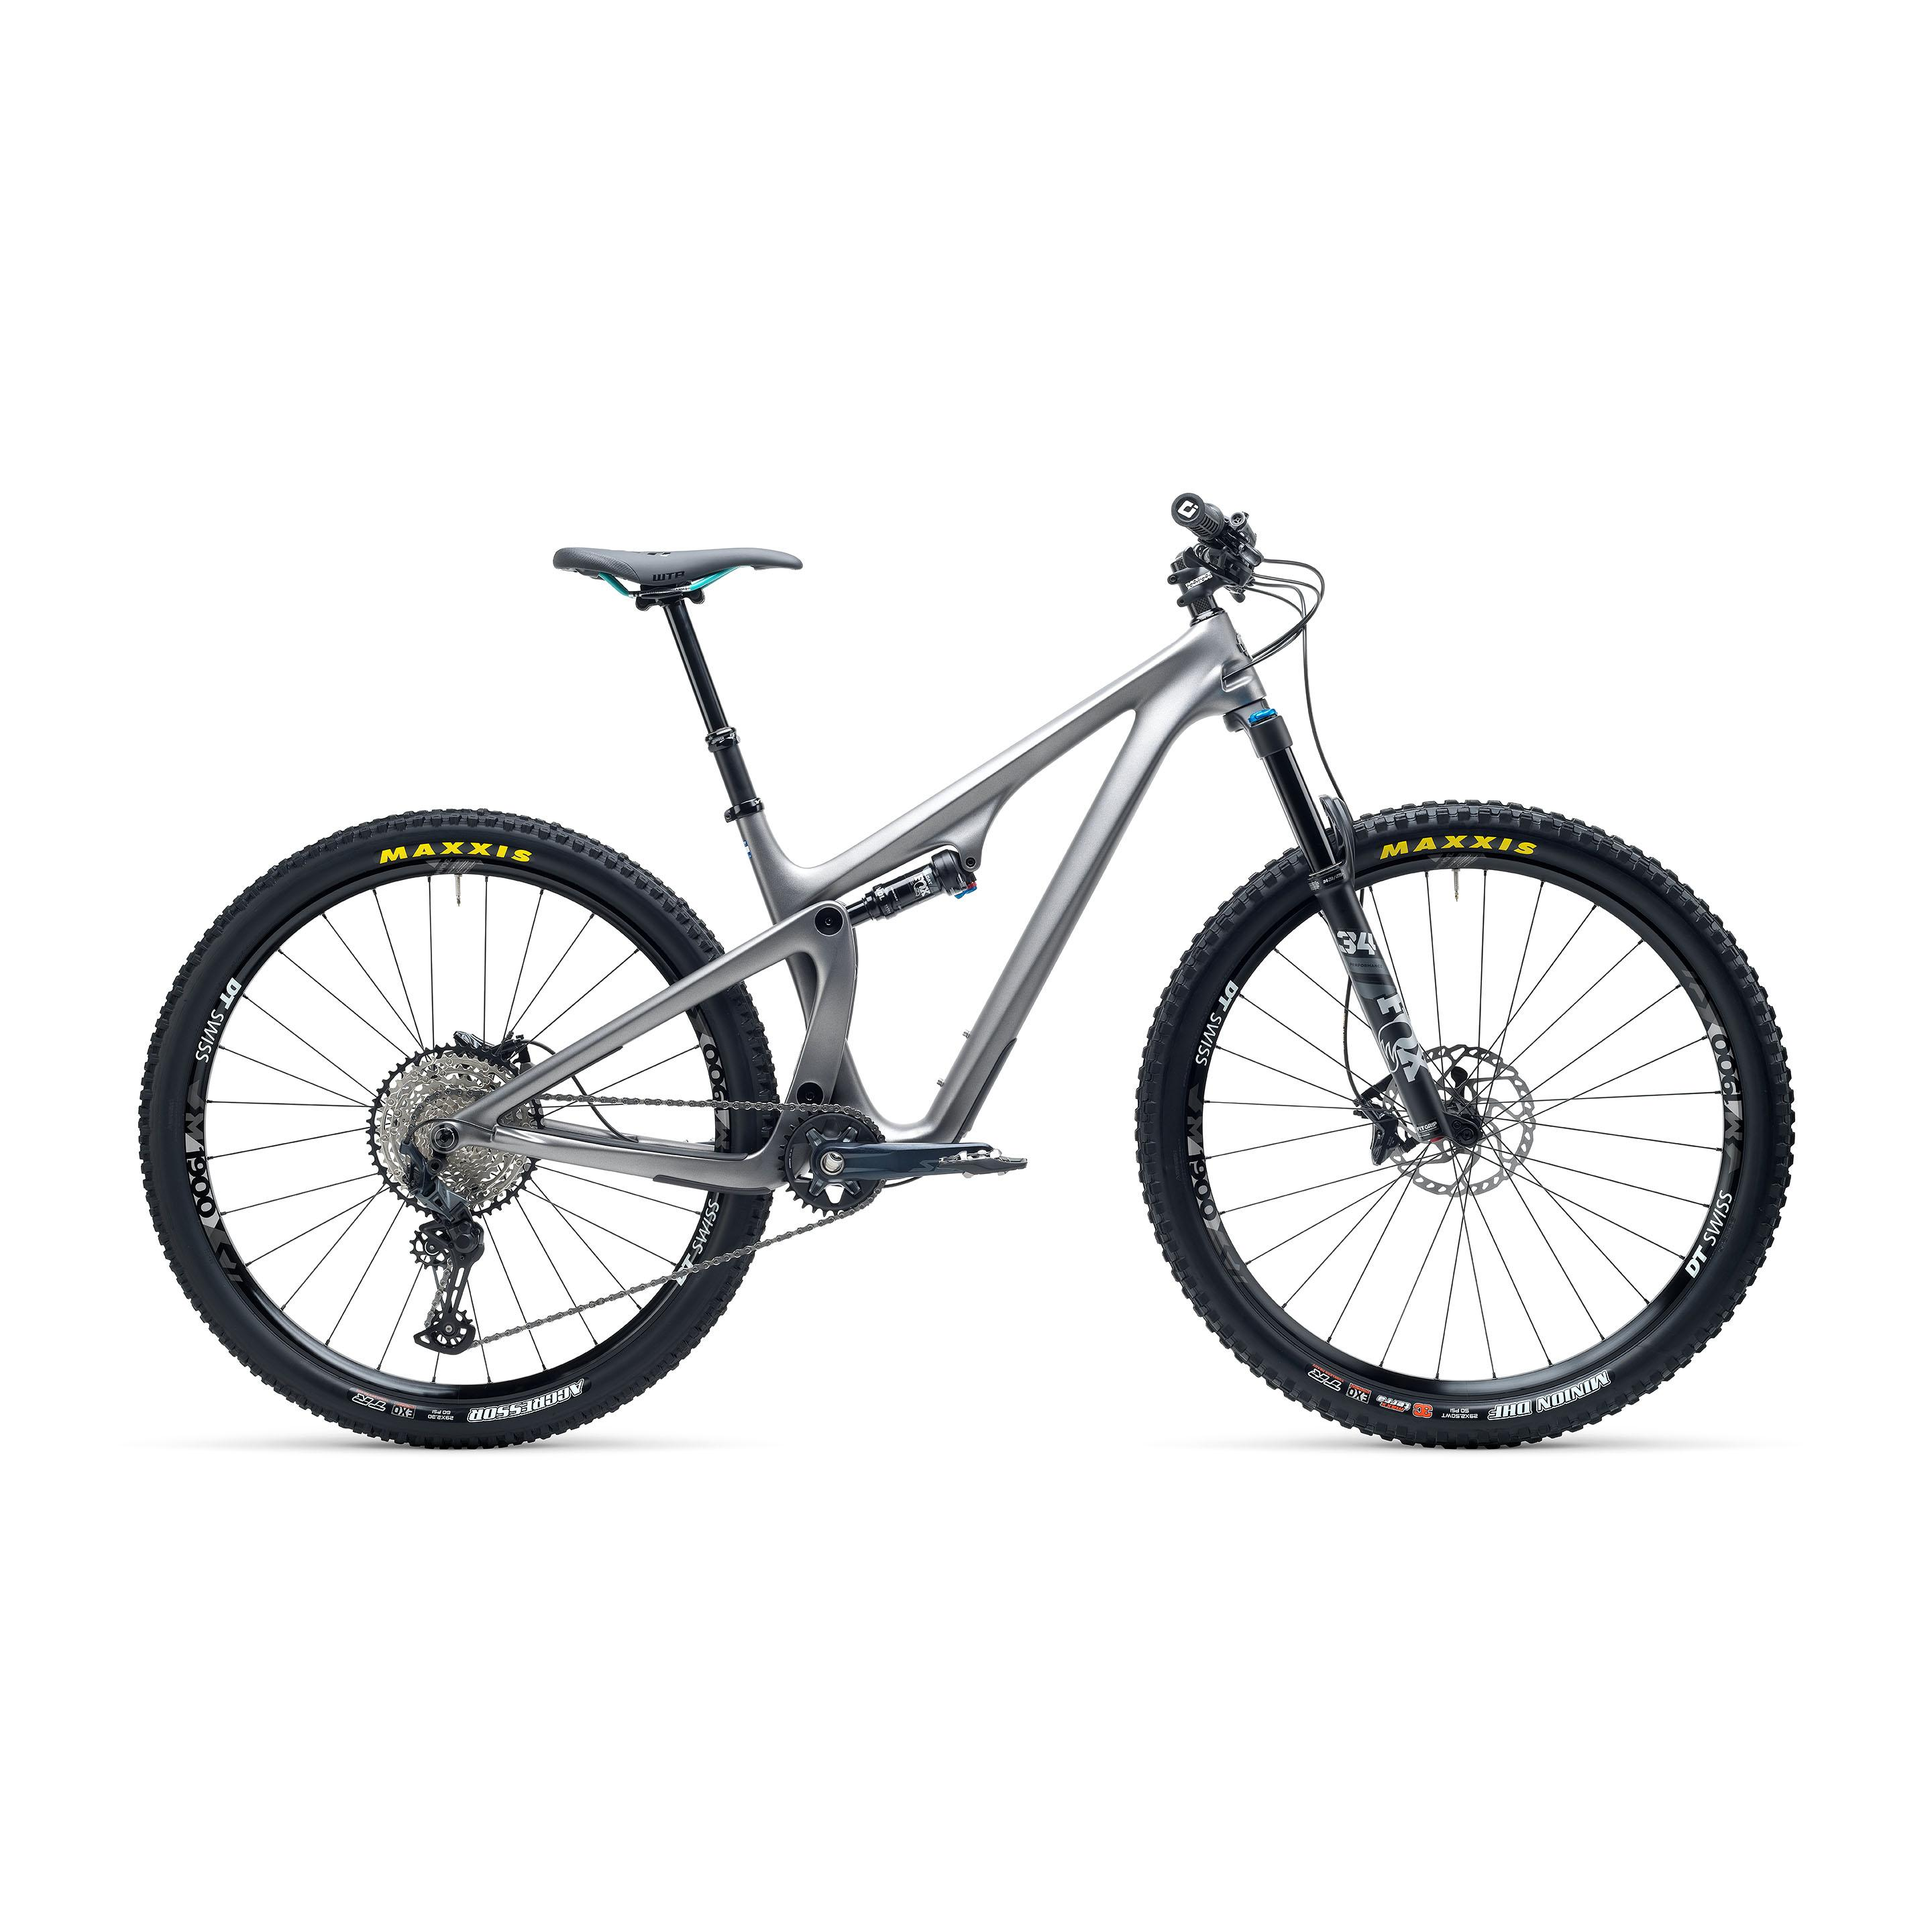 Yeti SB115 C-Series 29er Mountain Bike 2021 Anthracite